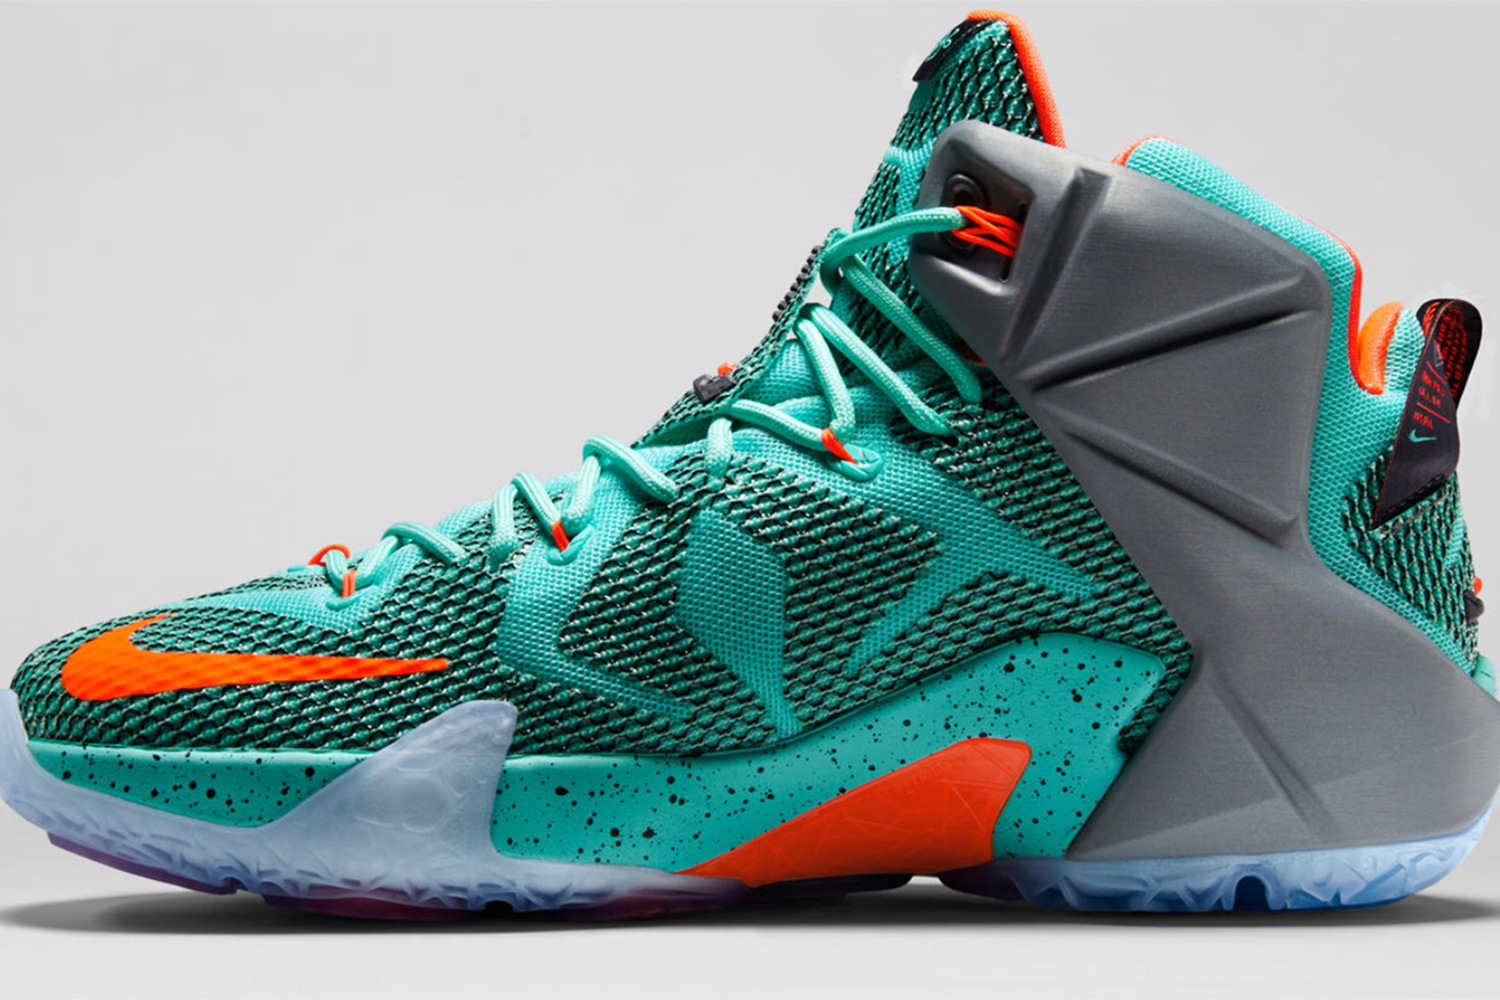 With all this talk of speed and quickness, LeBron needs a shoe powerful enough to handle his size. That is why Nike has focused on a completely new Zoom Air cushioning system that uses research from pressure-mapping a basketball player's movements to define the feel of the LEBRON 12. To highlight the research, Nike had fun with the coloring of the shoe, giving us plenty of pops and brightness to remind us all that power requires cushioning.